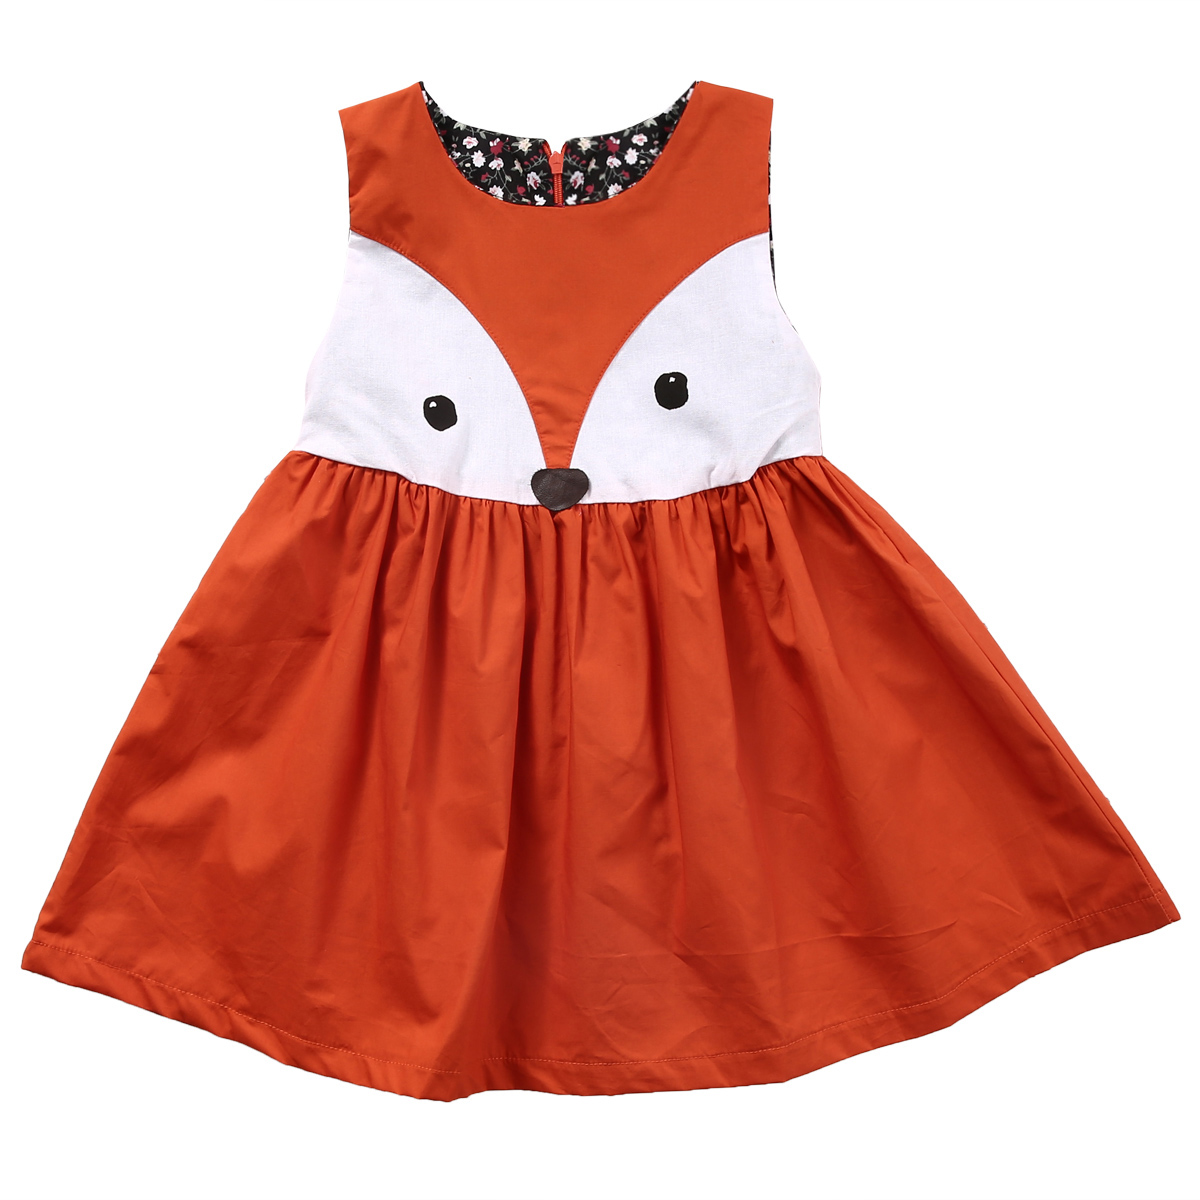 Sitemap Orico Phi 35 35inch Hdd Protector Yellow 2018 Summer Casual Baby Girls Sleeveless Toddler Kids Fox Dress Formal Party Wedding Tutu Orange Cute